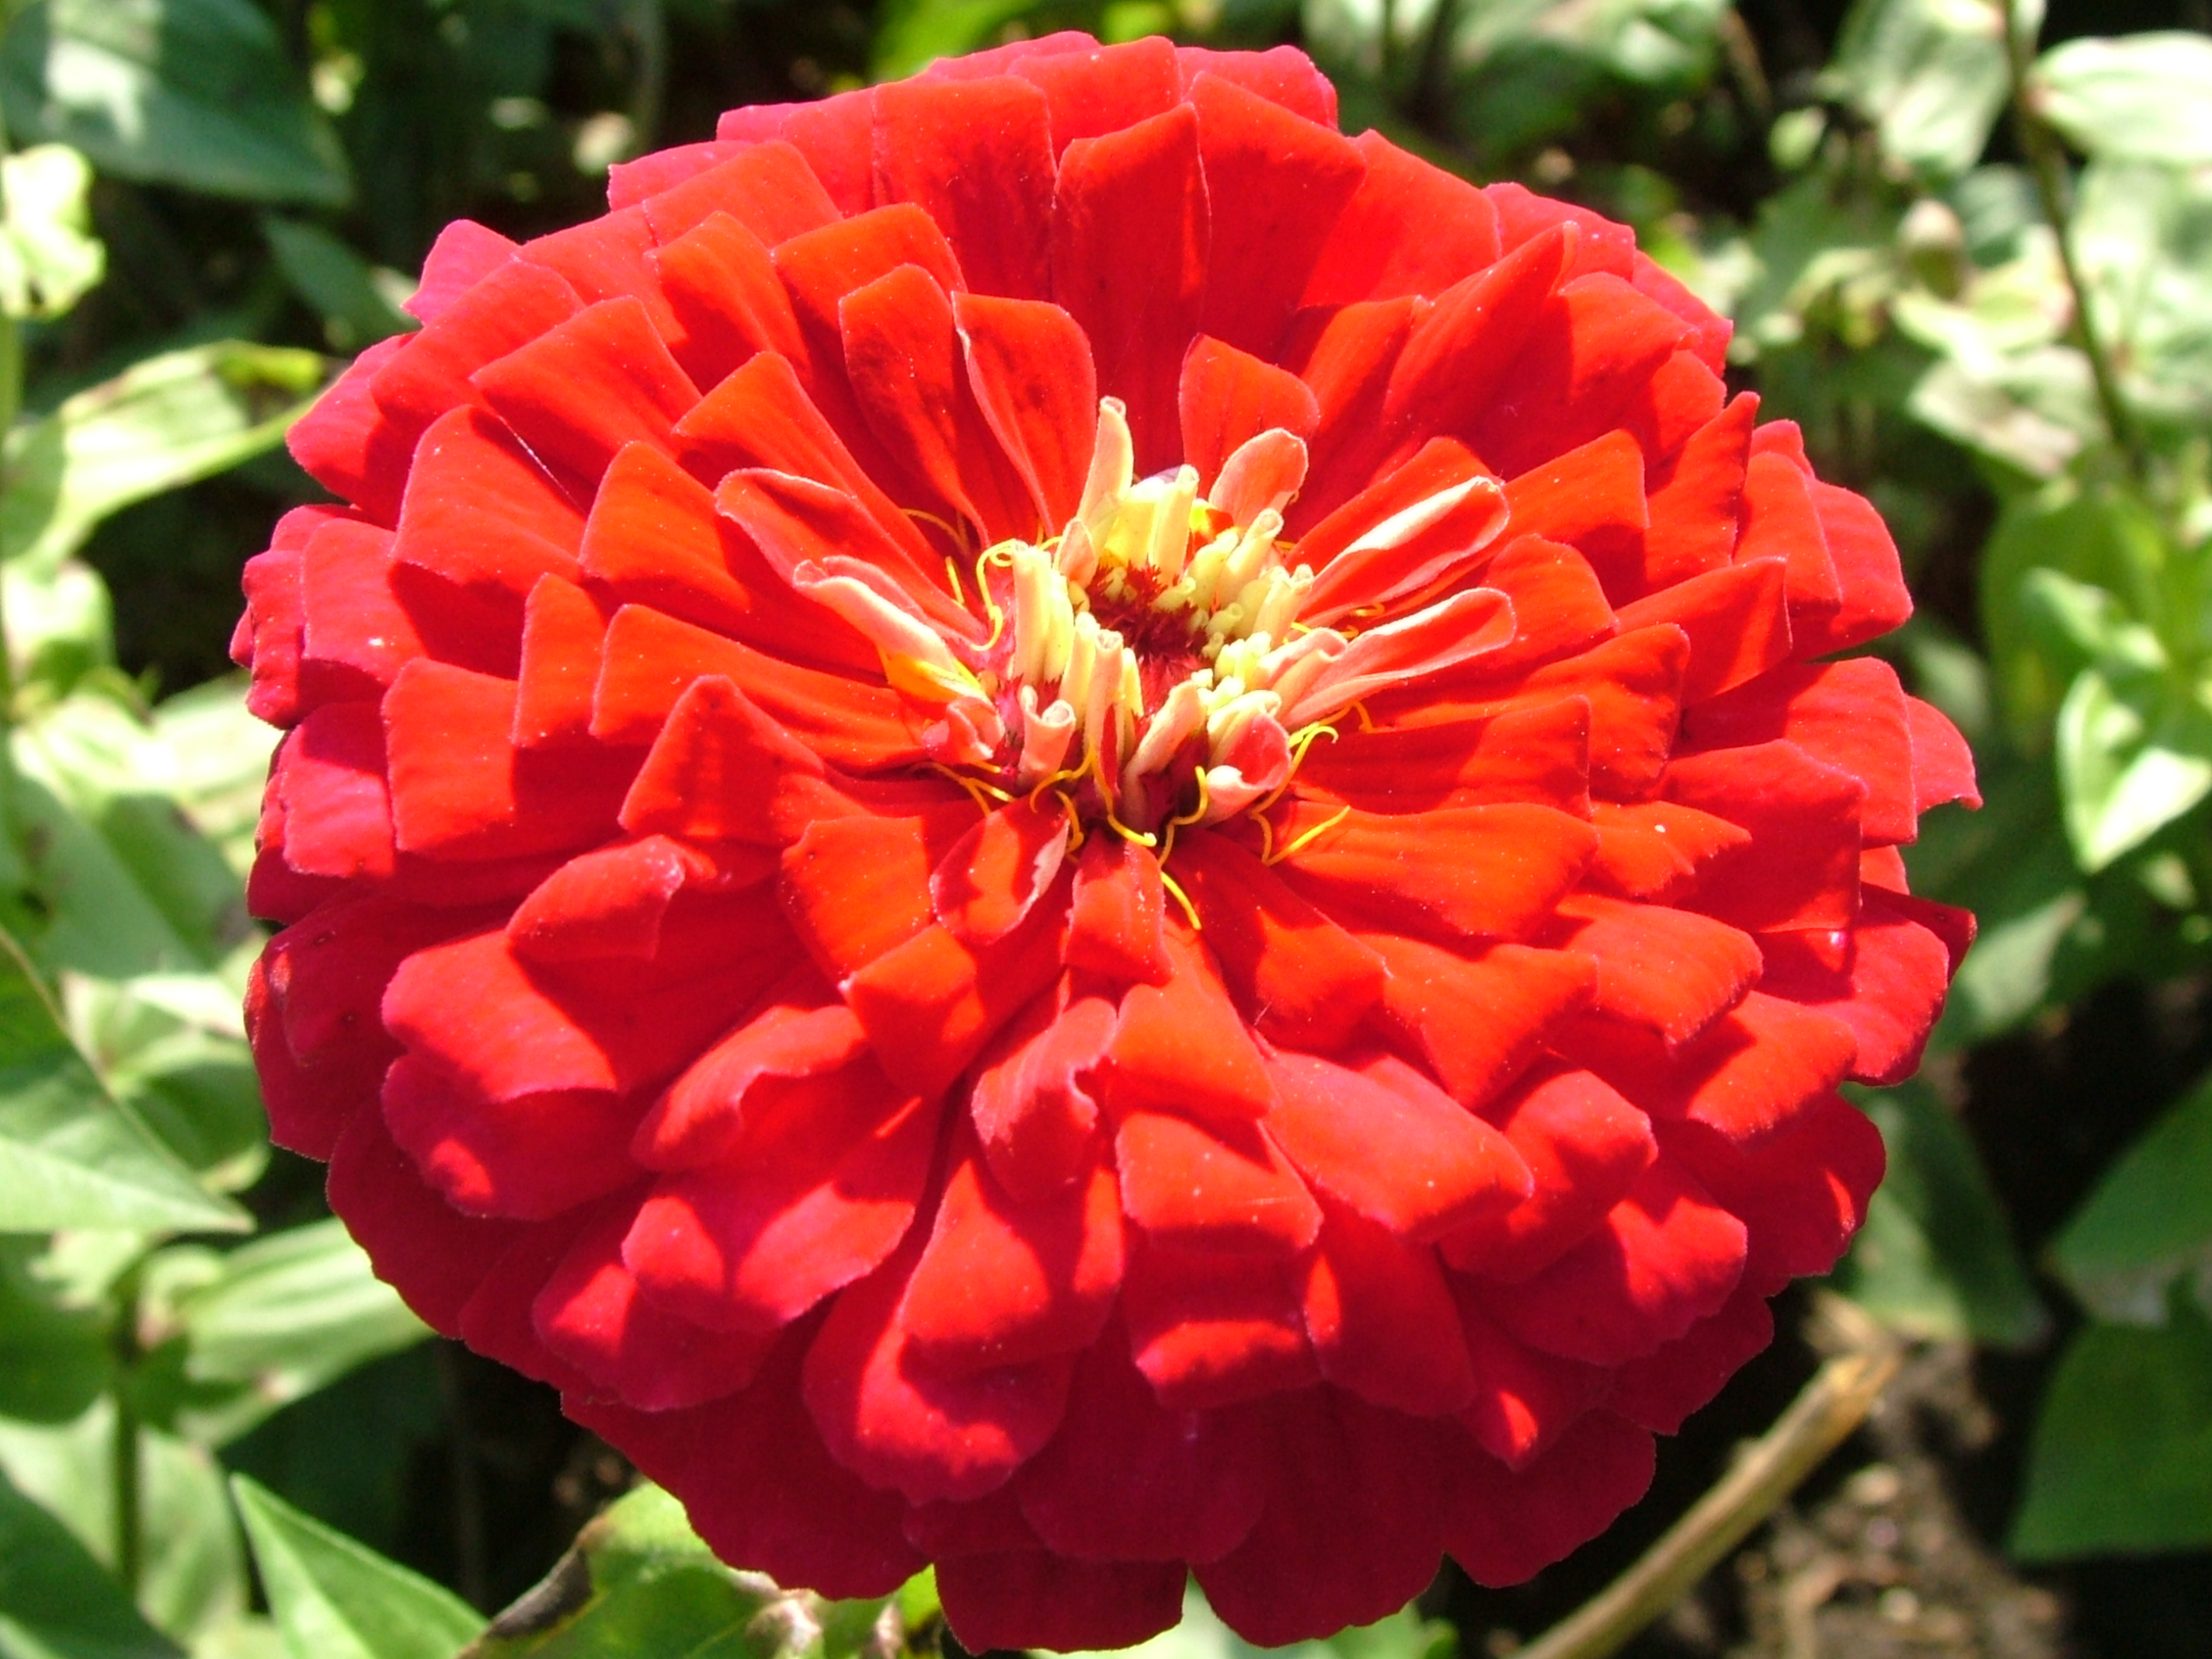 Bright Red Flower Image In Hi Res